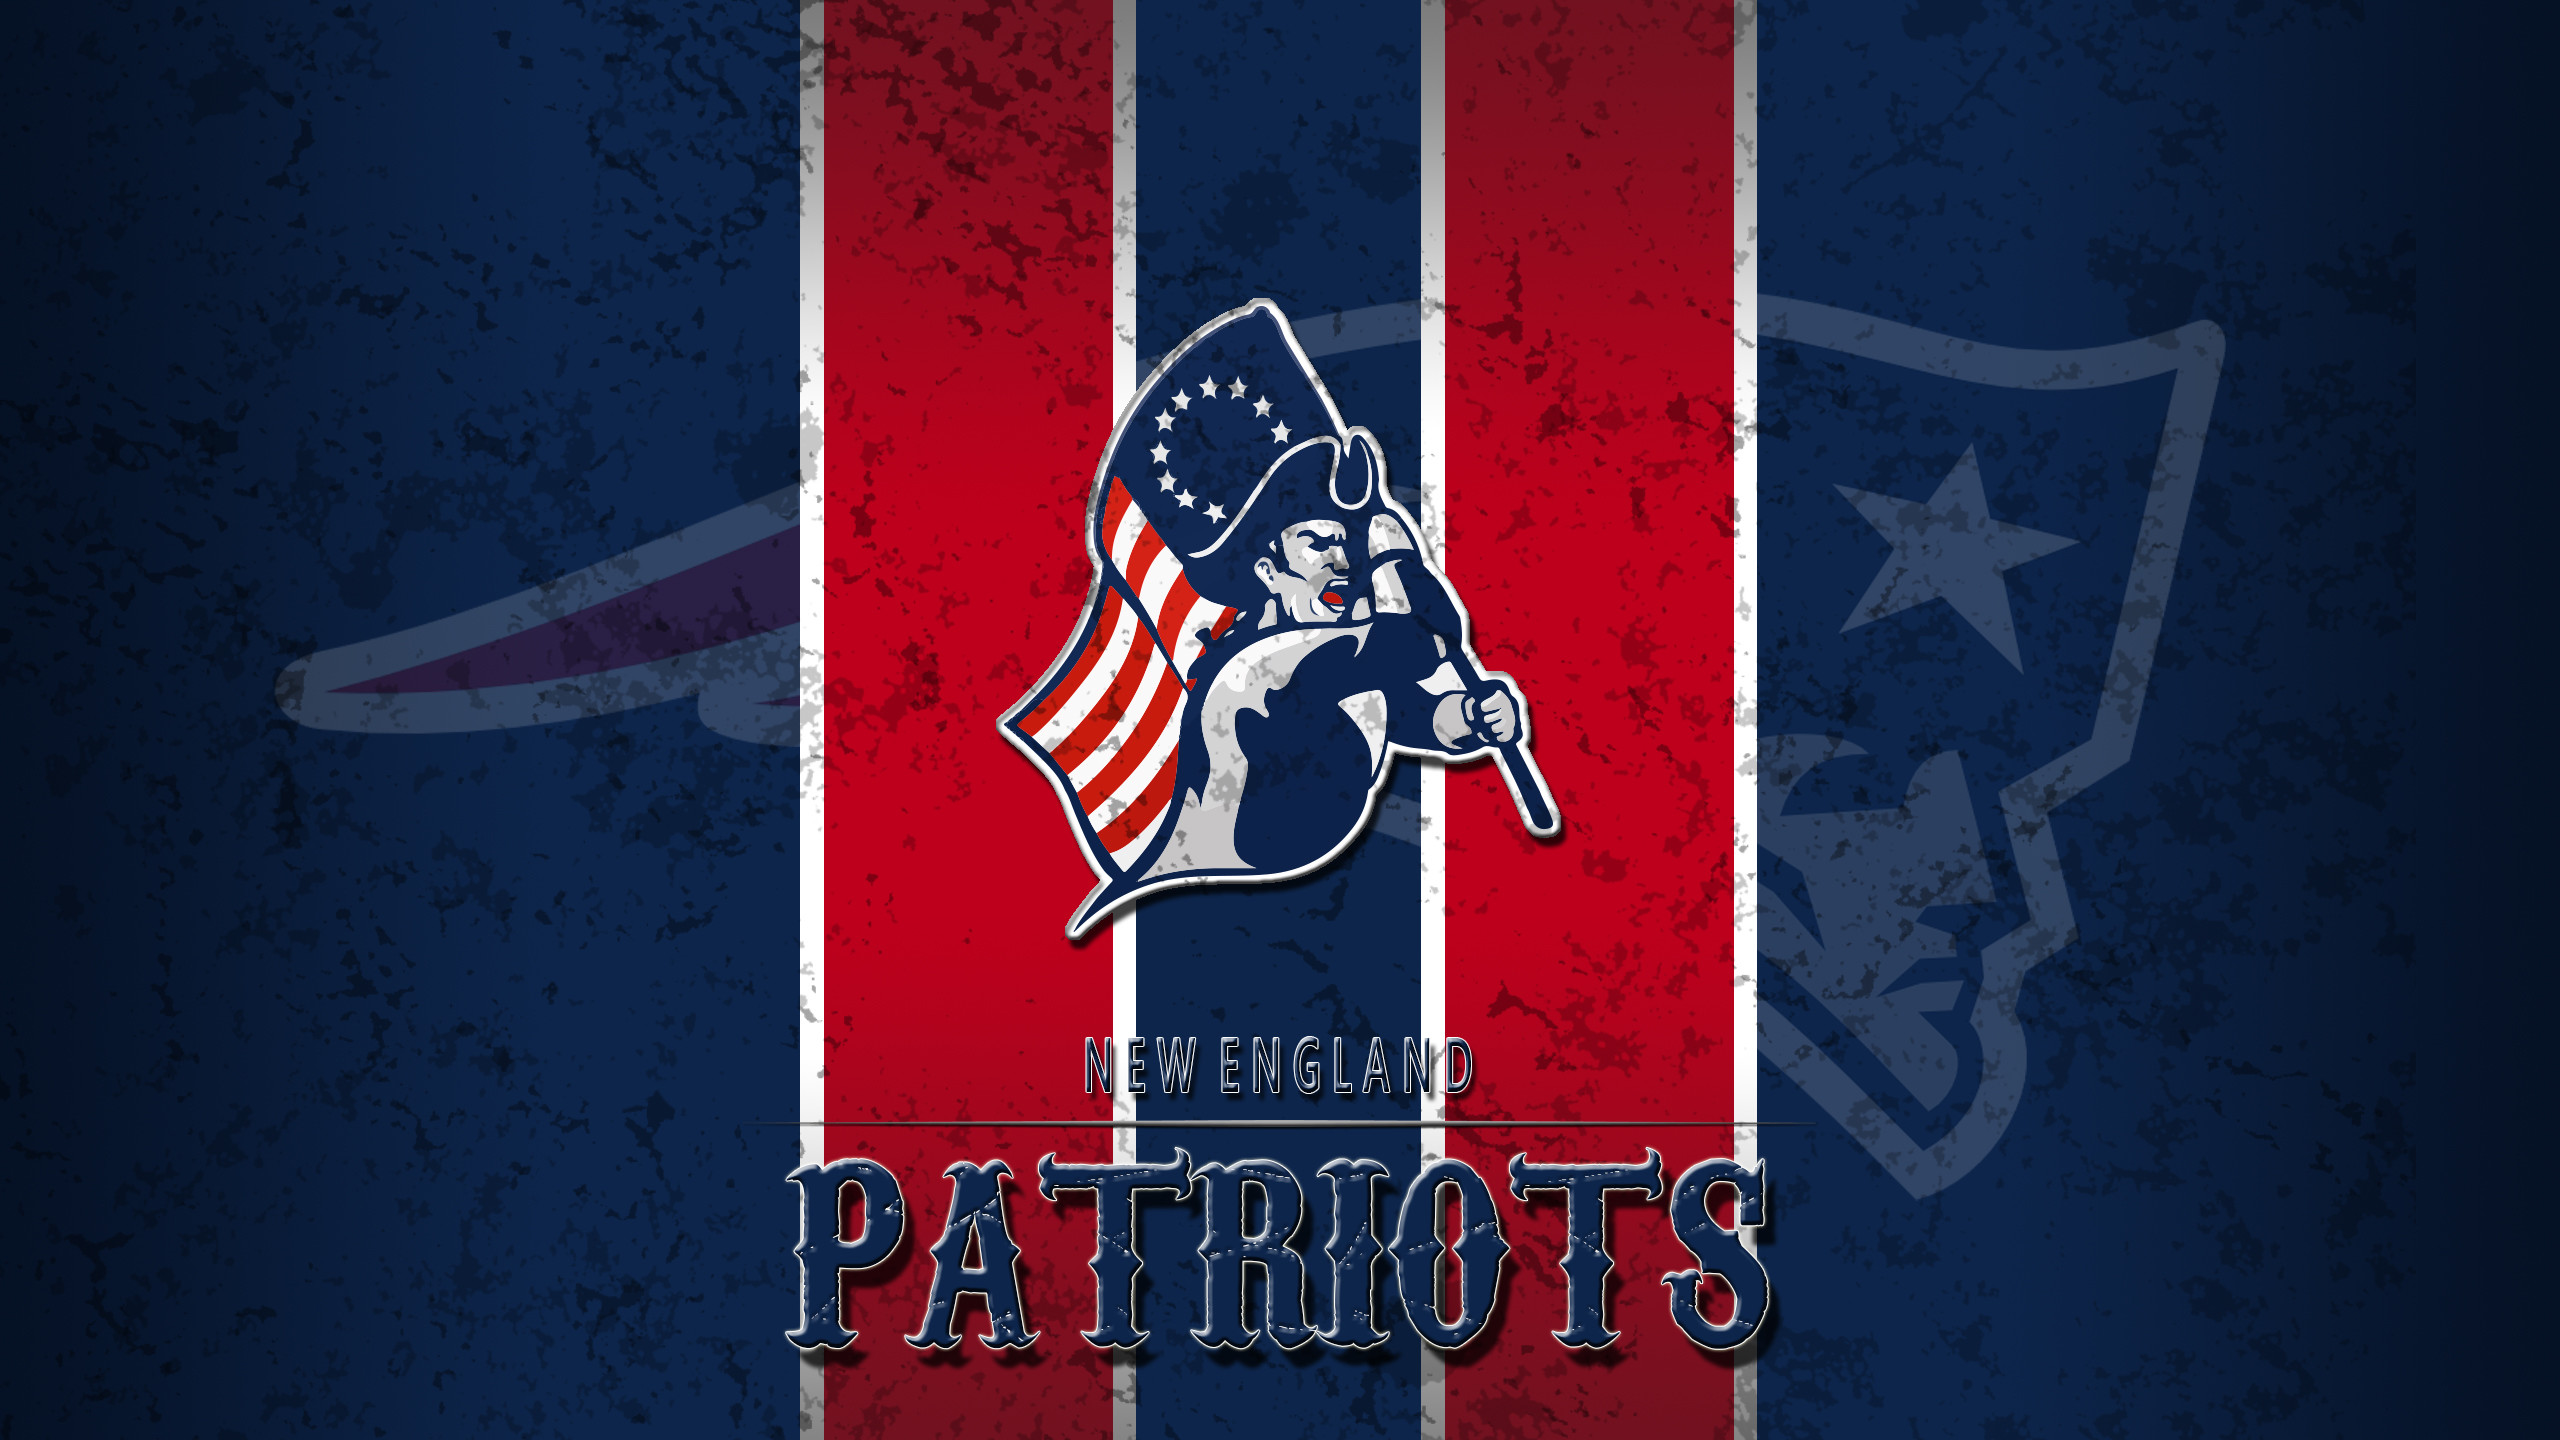 … new england patriots wallpapers 69 wallpapers hd wallpapers …